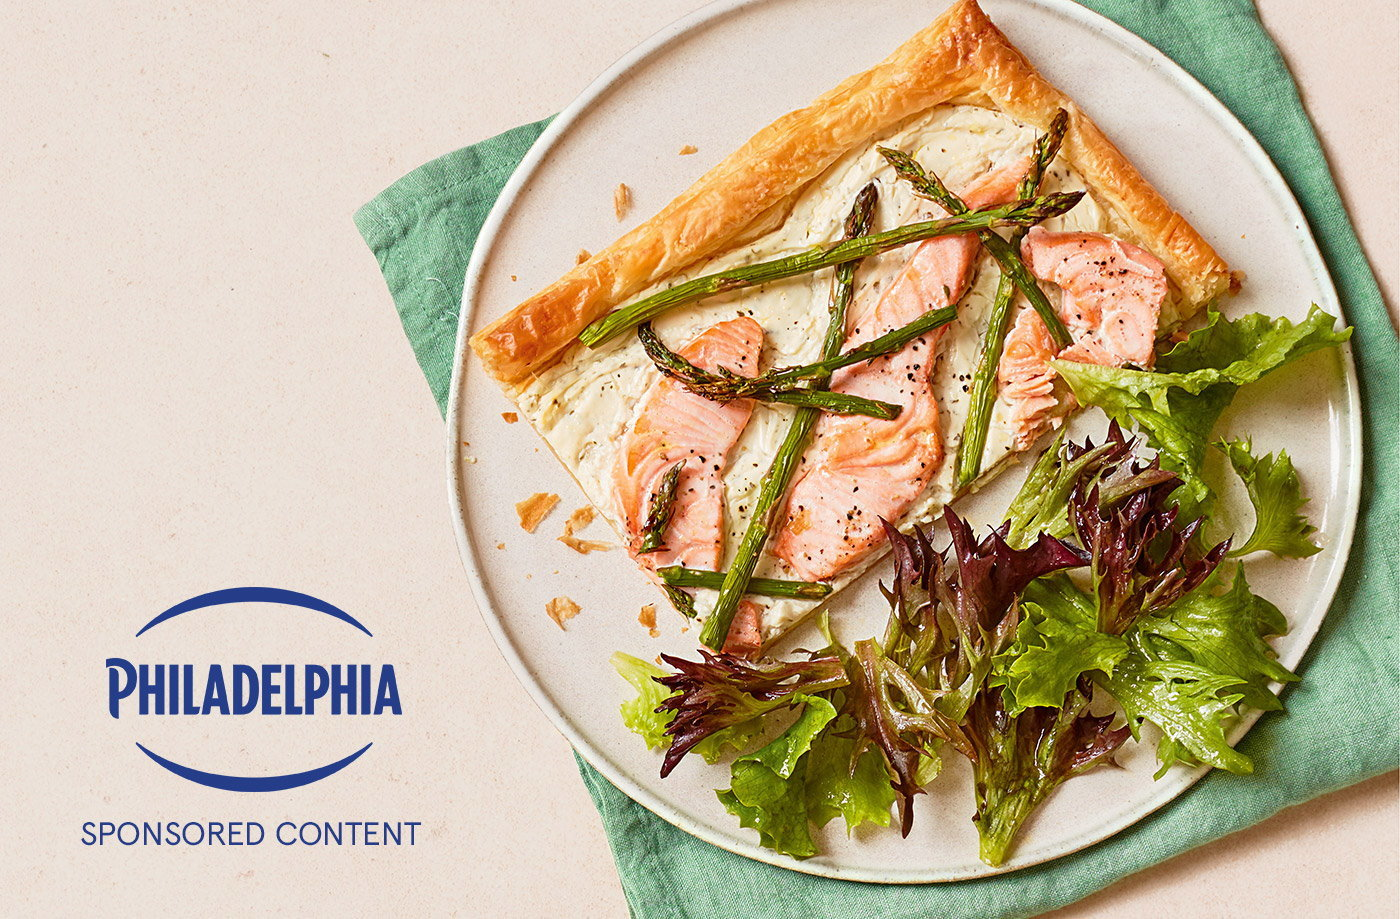 Creamy Philadelphia Garlic & Herbs soft cheese lines the base of this quick and simple salmon and asparagus tart. It's an ideal – and effort-free – lunch option that makes the most of fresh produce